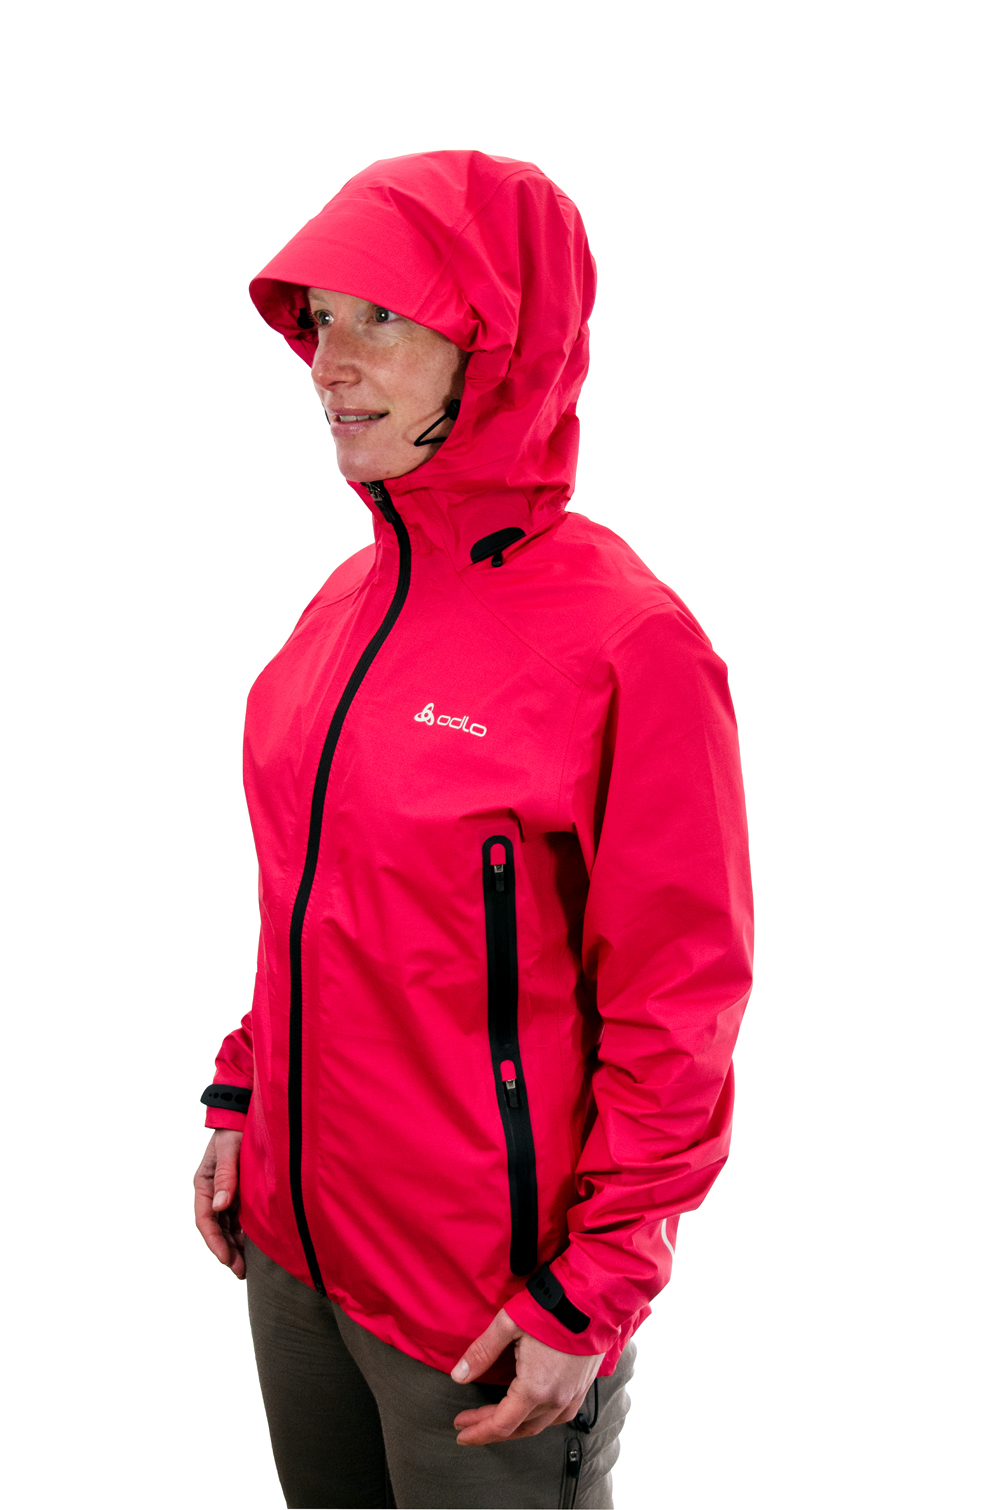 ad96a0fd5bf Gear Waterproof Jackets — Live for the Outdoors